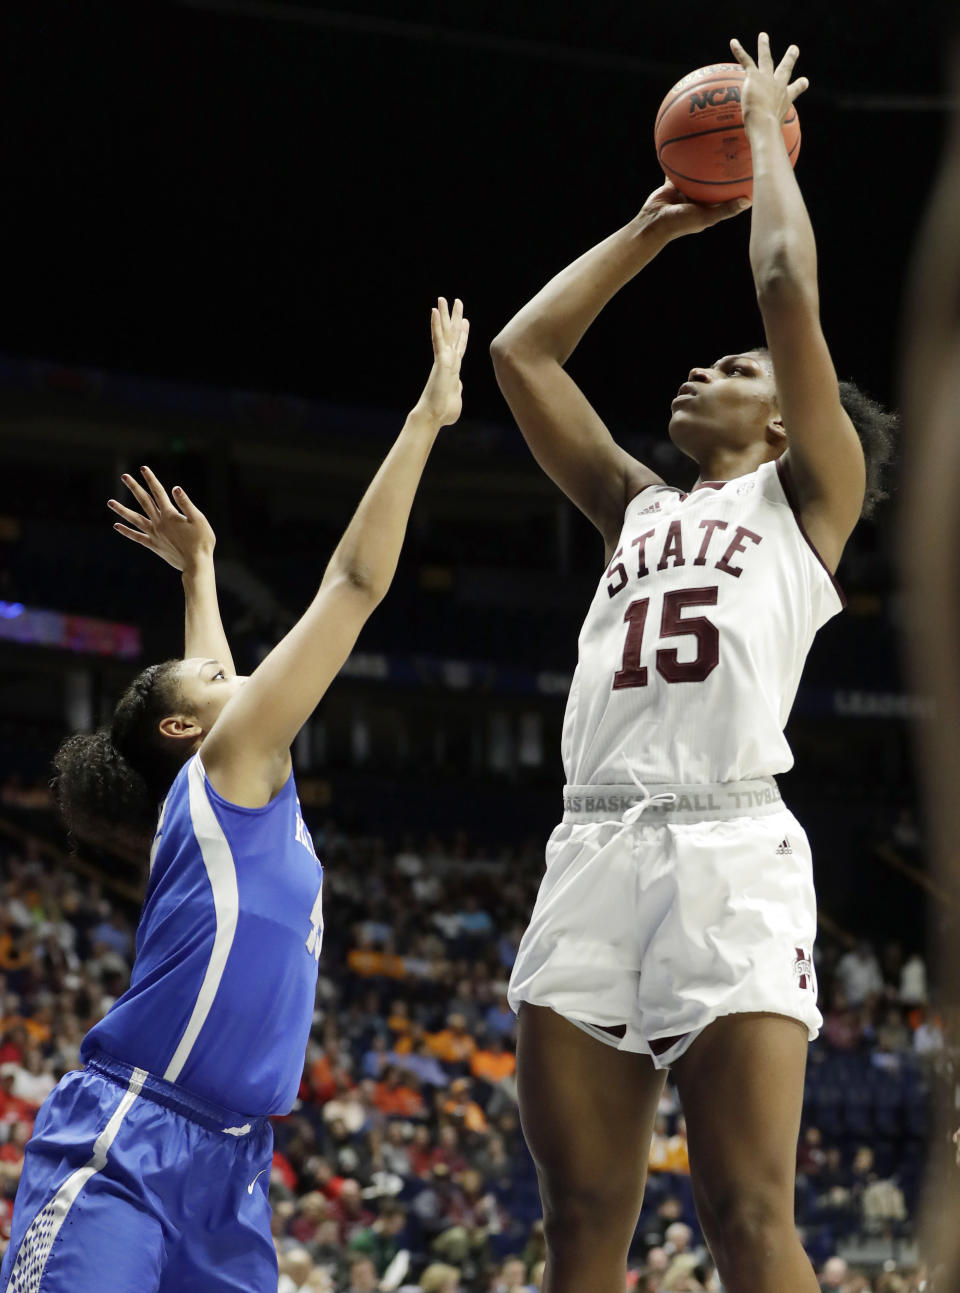 Mississippi State center Teaira McCowan (15) shoots over Kentucky's Alyssa Rice in the second half of an NCAA college basketball game at the women's Southeastern Conference tournament Friday, March 2, 2018, in Nashville, Tenn. Mississippi State won 81-58. (AP Photo/Mark Humphrey)